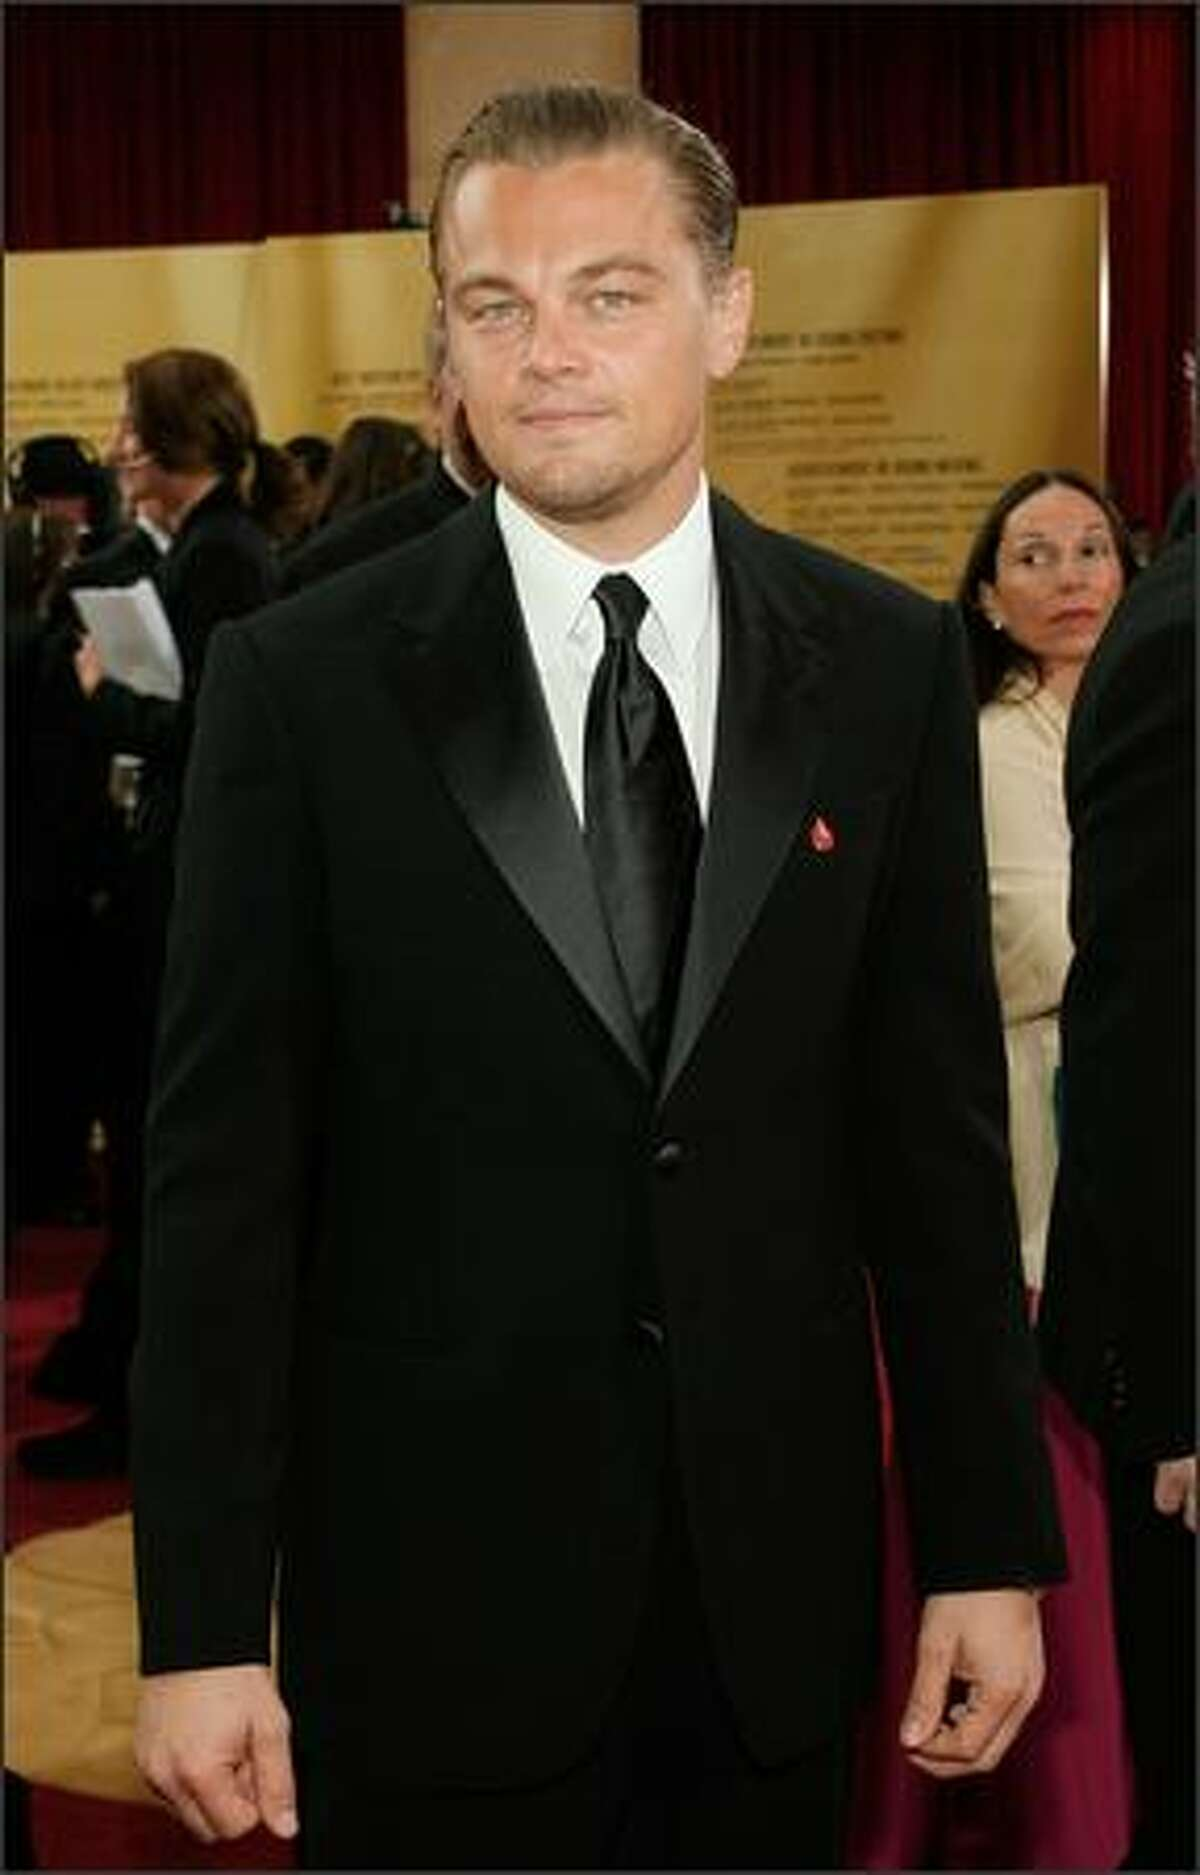 Actor Leonardo DiCaprio attends the 79th Annual Academy Awards. (Vince Bucci/Getty Images)